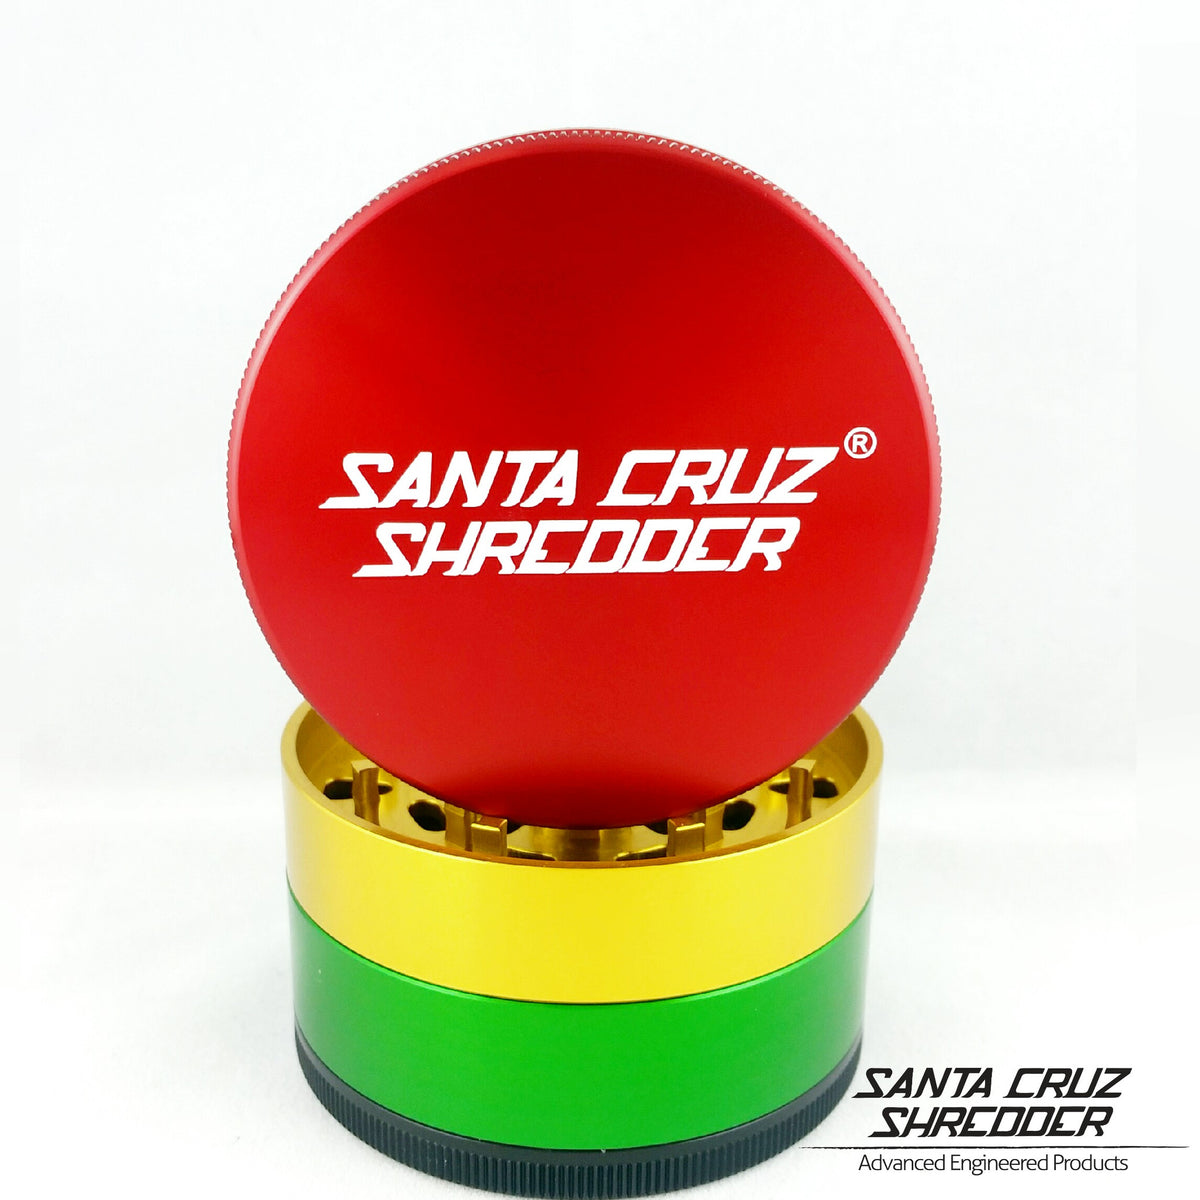 by Santa Cruz Shredder Santa Cruz Shredder 4 Piece Medium New Rasta